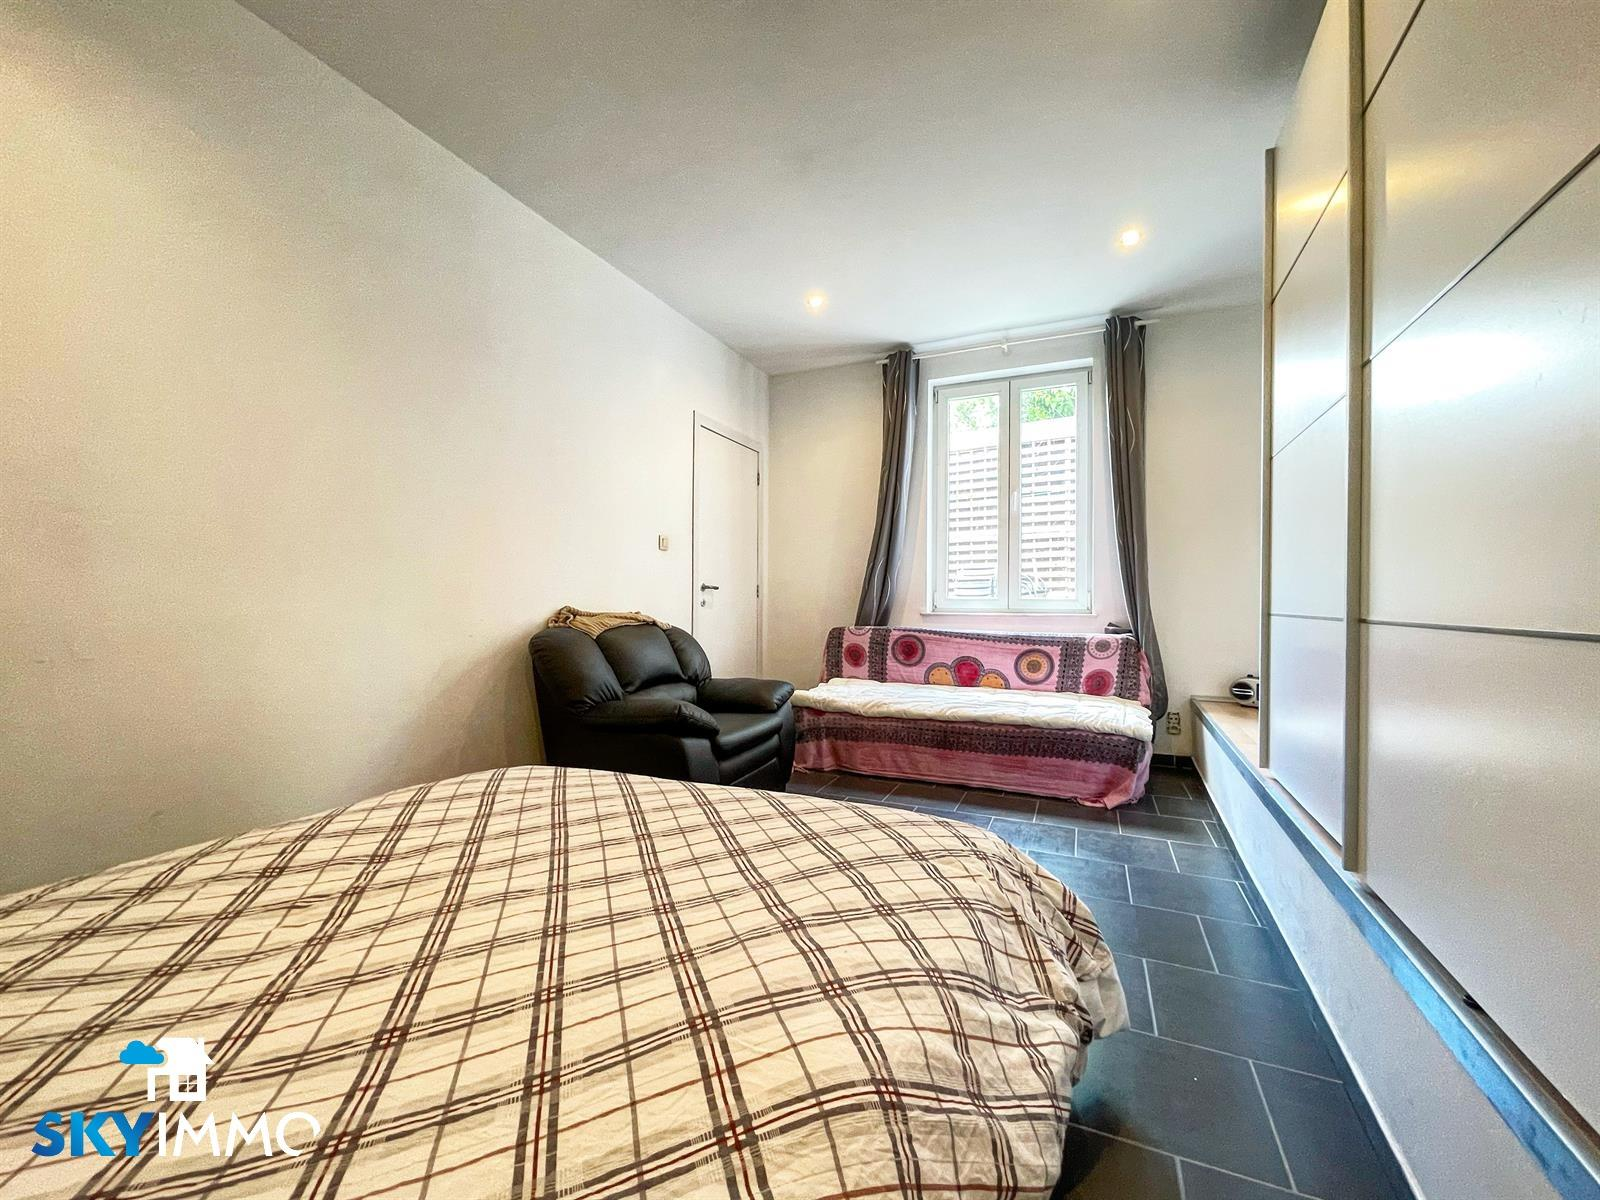 Huis - Flemalle - #4401918-12